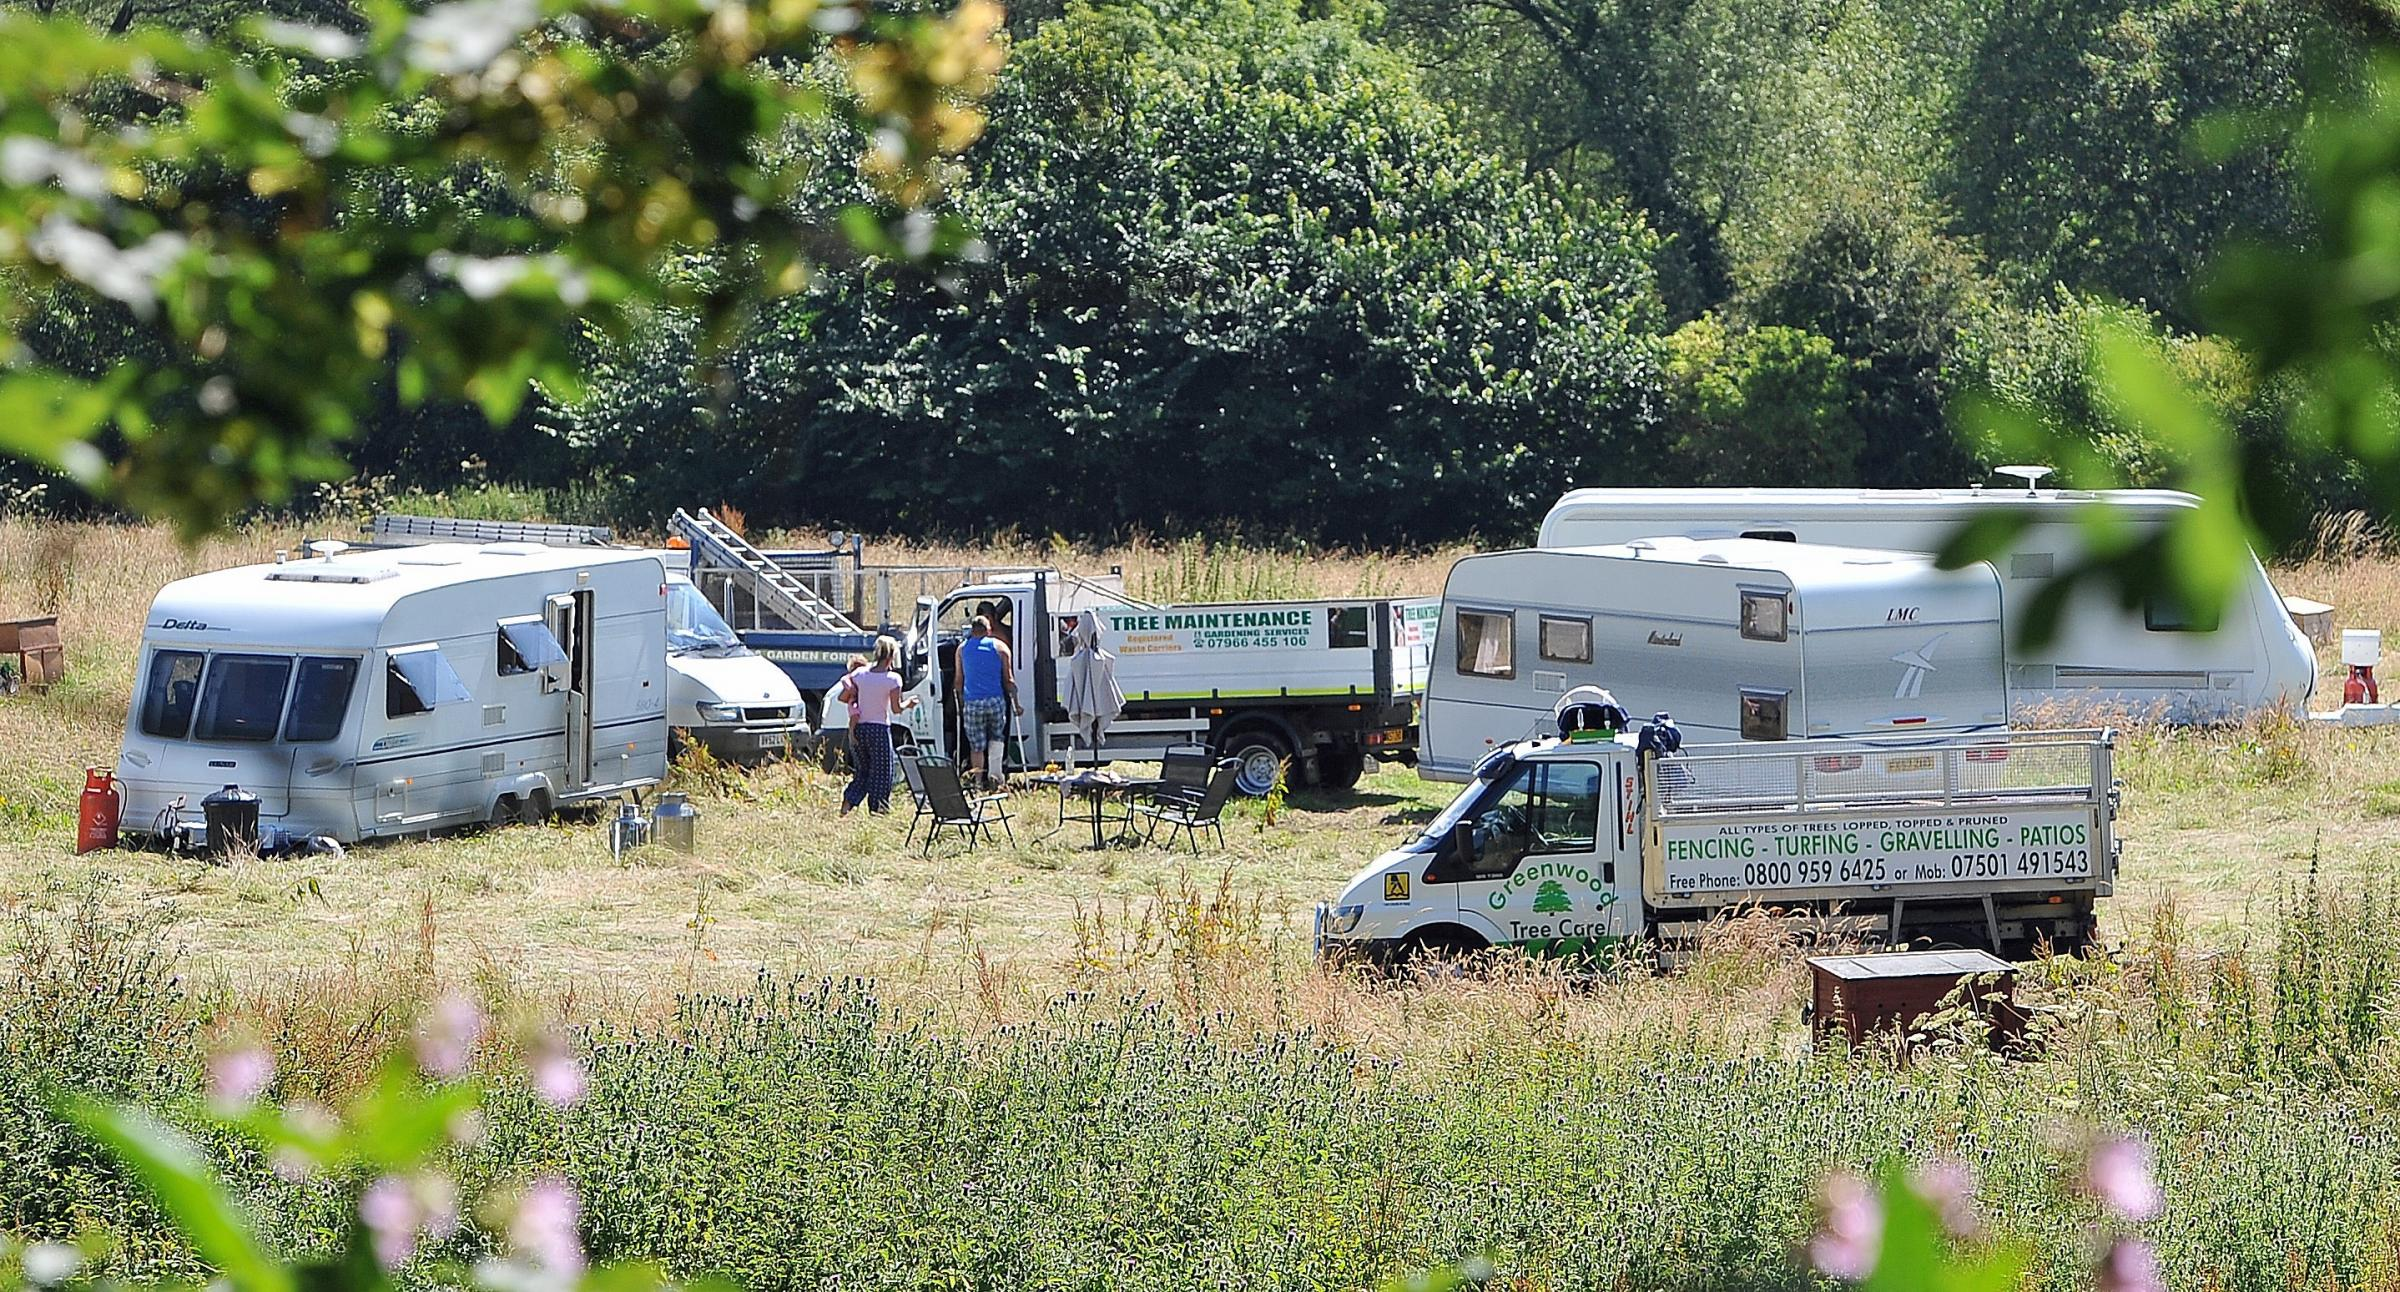 MP urges Council to make evicted travellers foot the bill